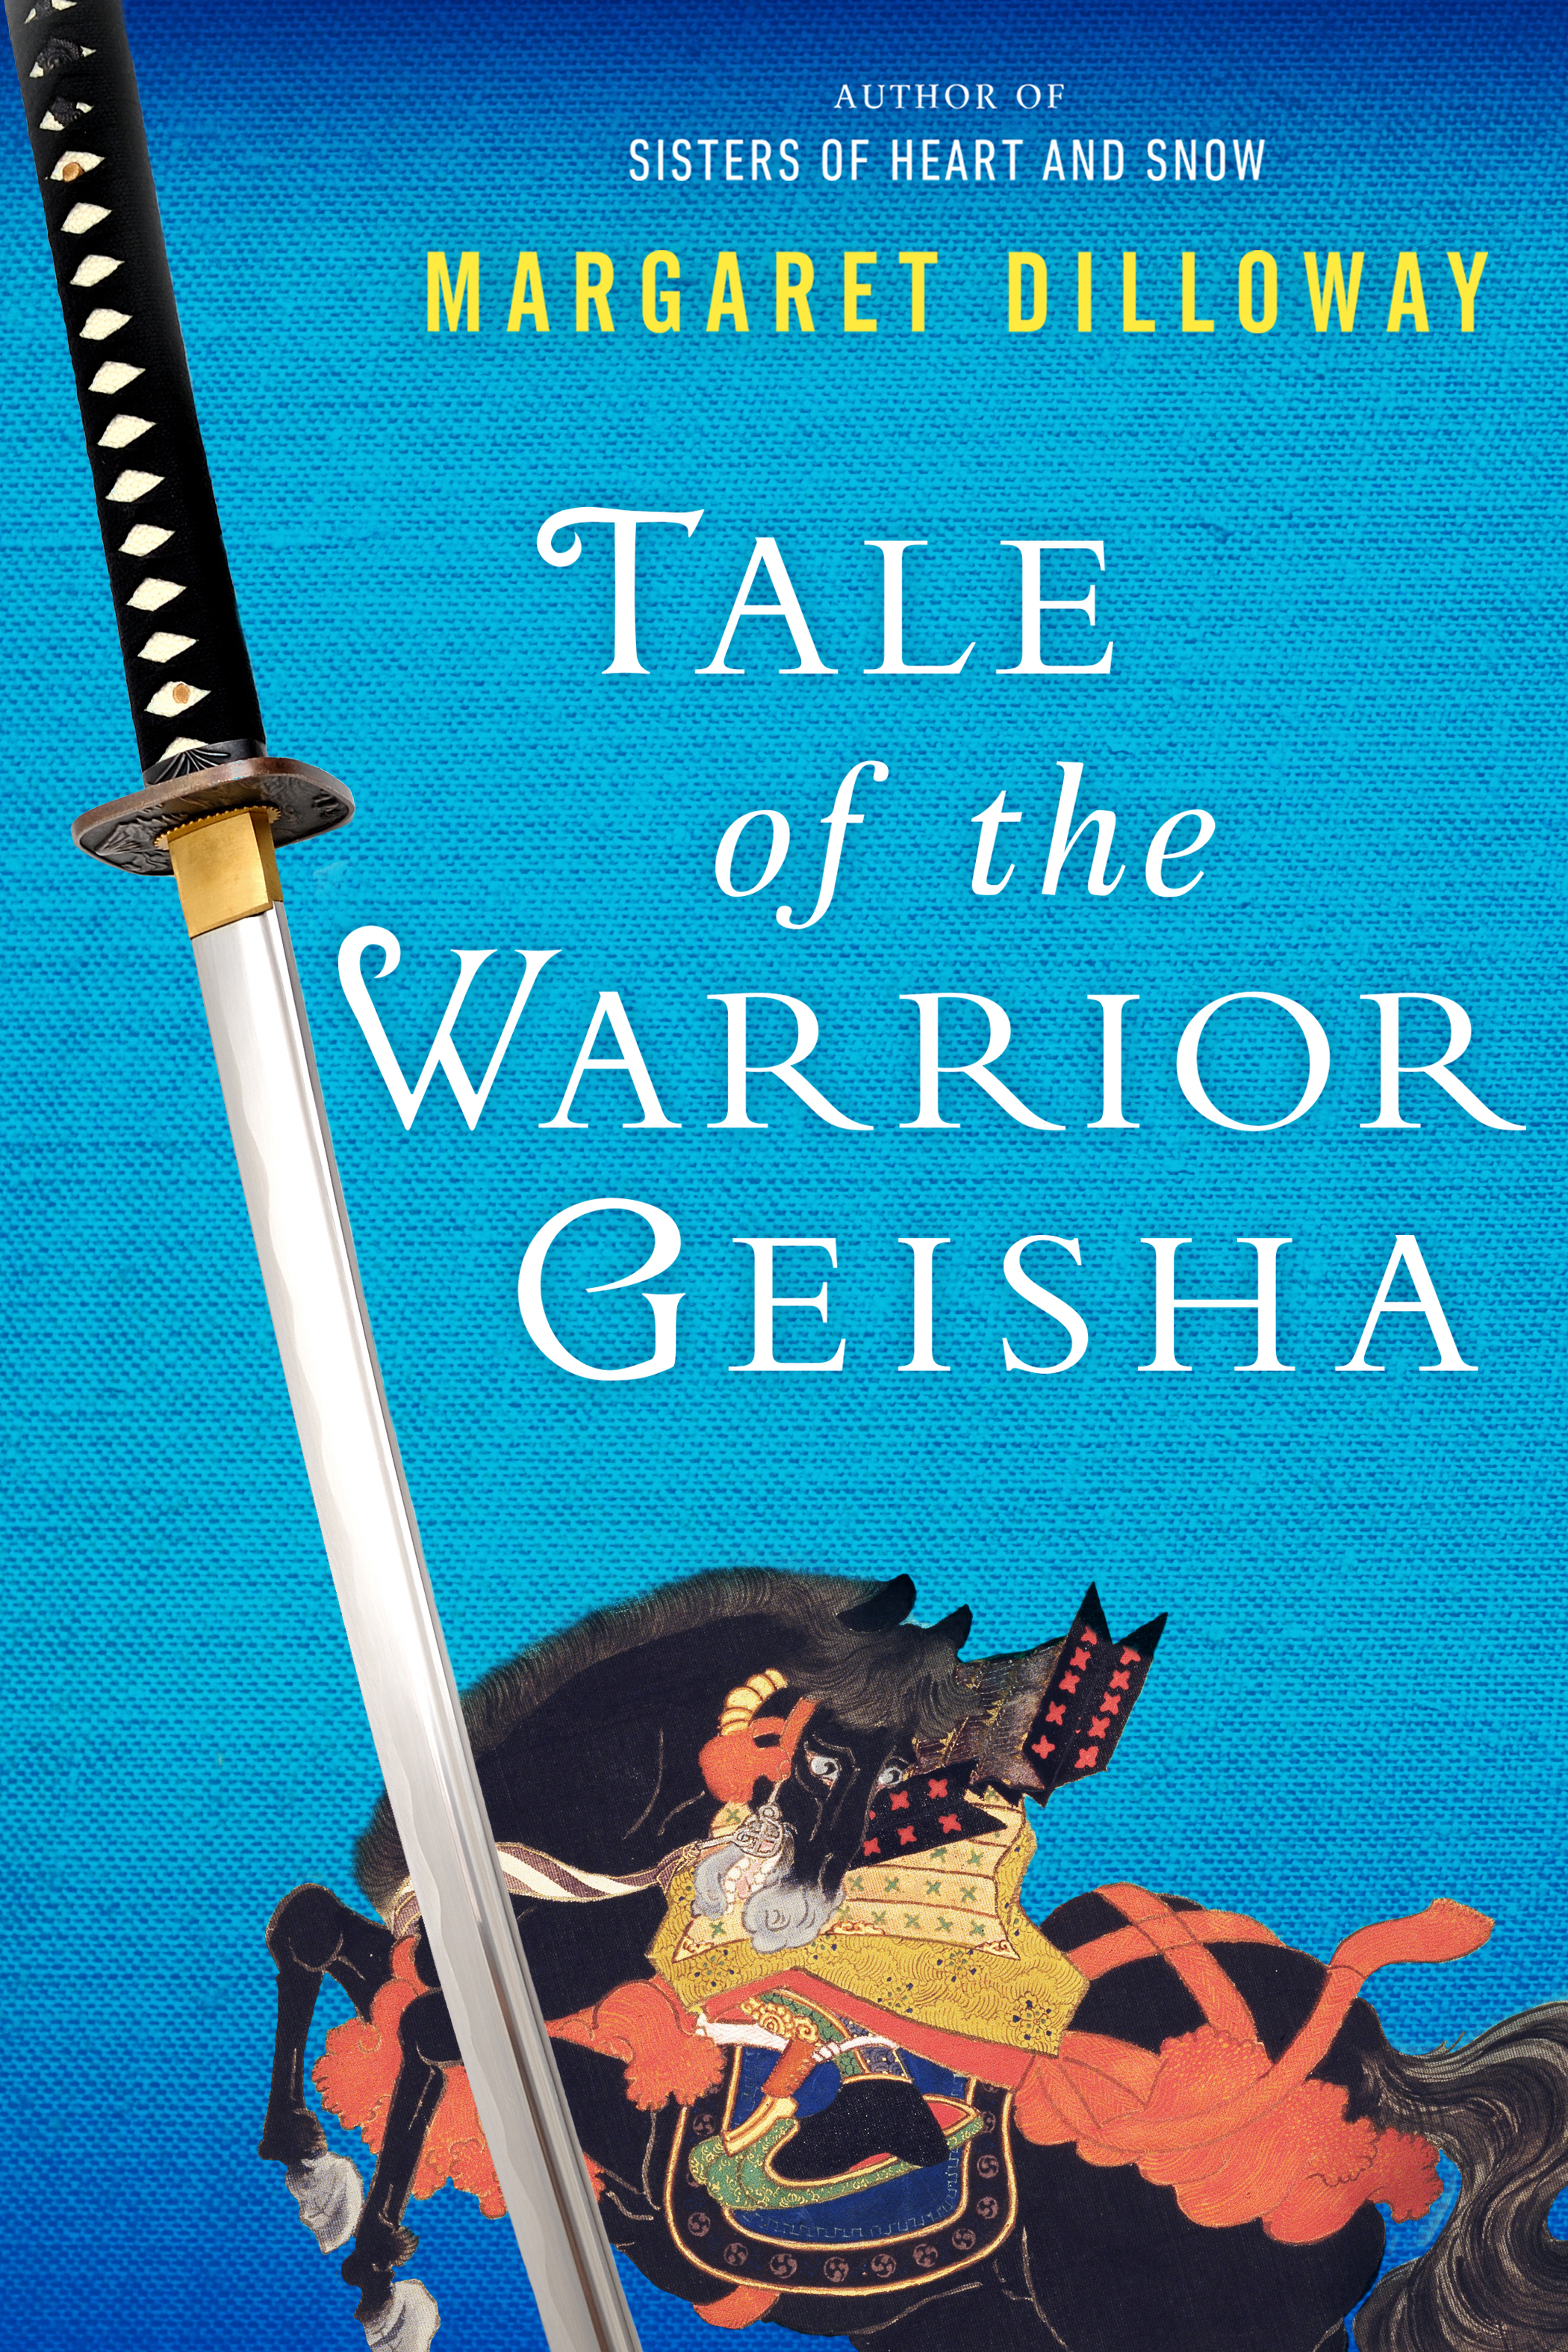 TaleoftheWarriorGeisha_eBook